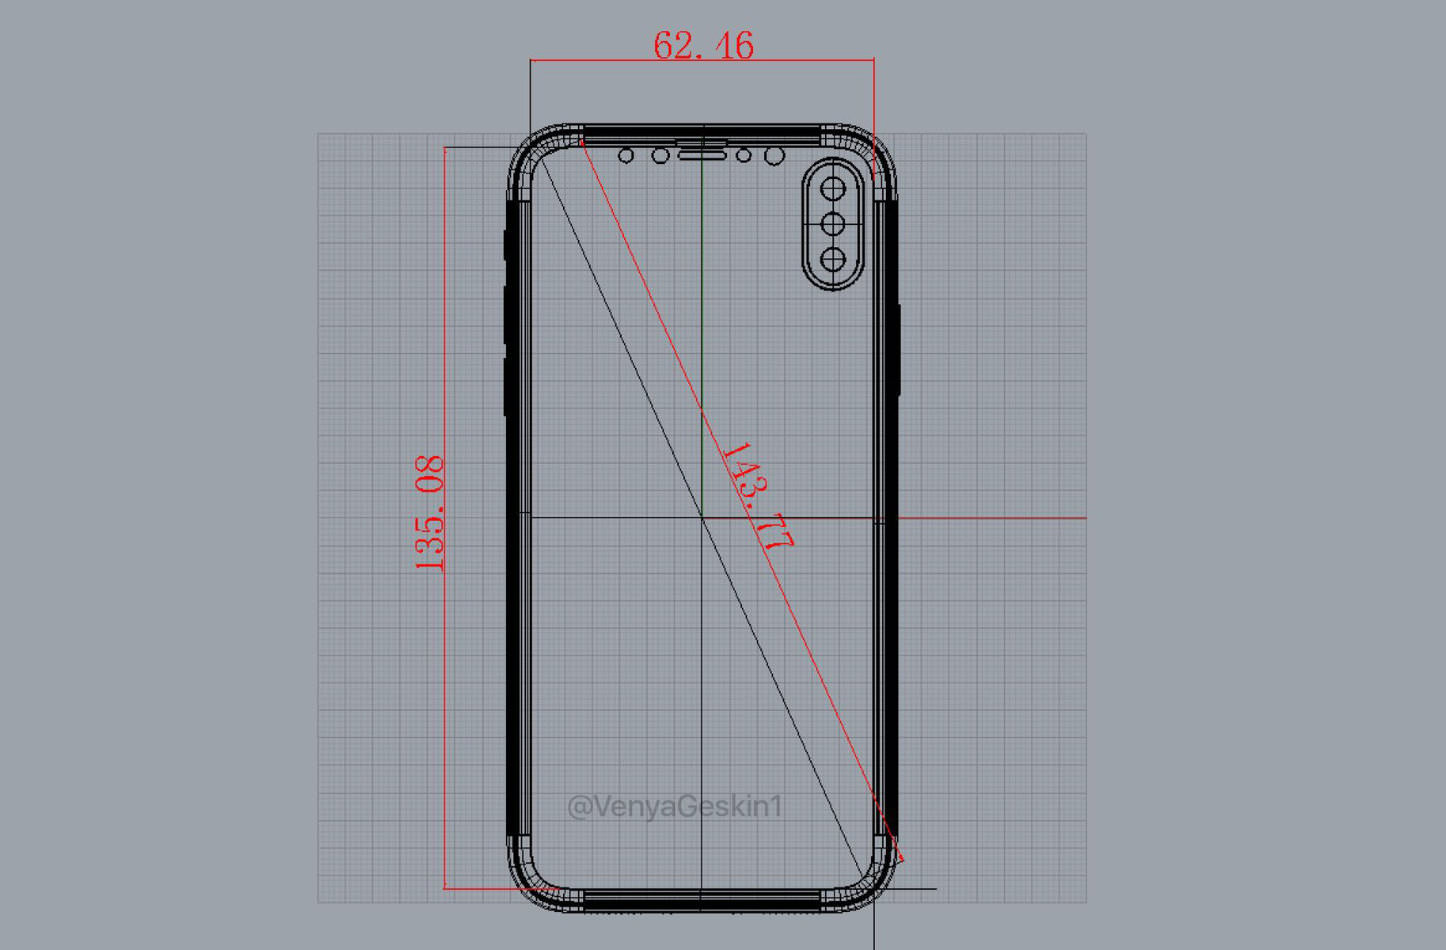 Iphone8 schematics new